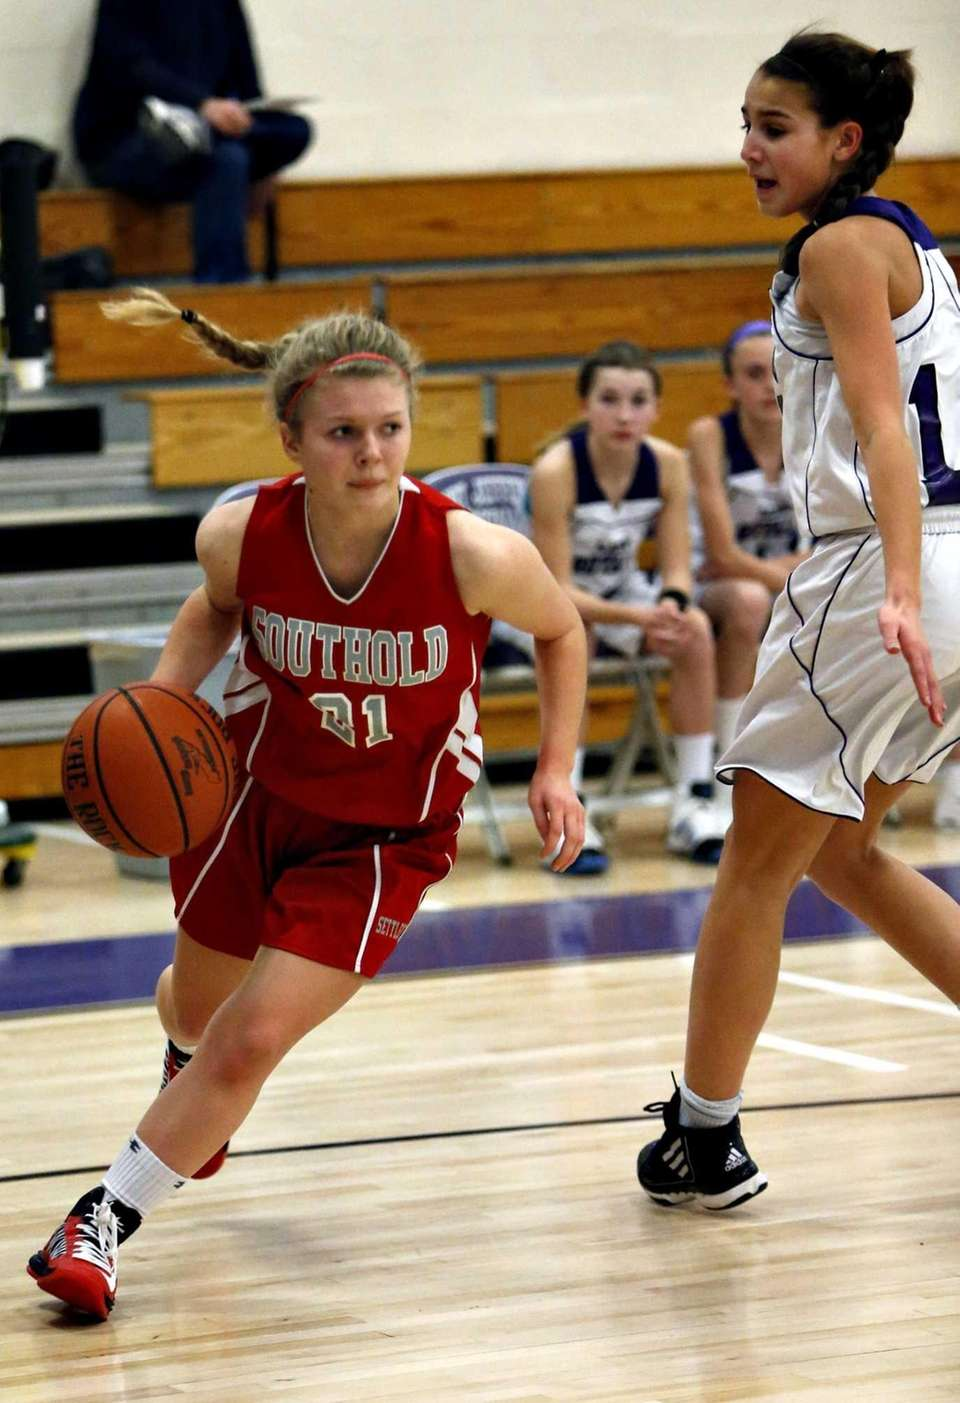 Southold's Justina Babcock drives around Port Jefferson's Corinne